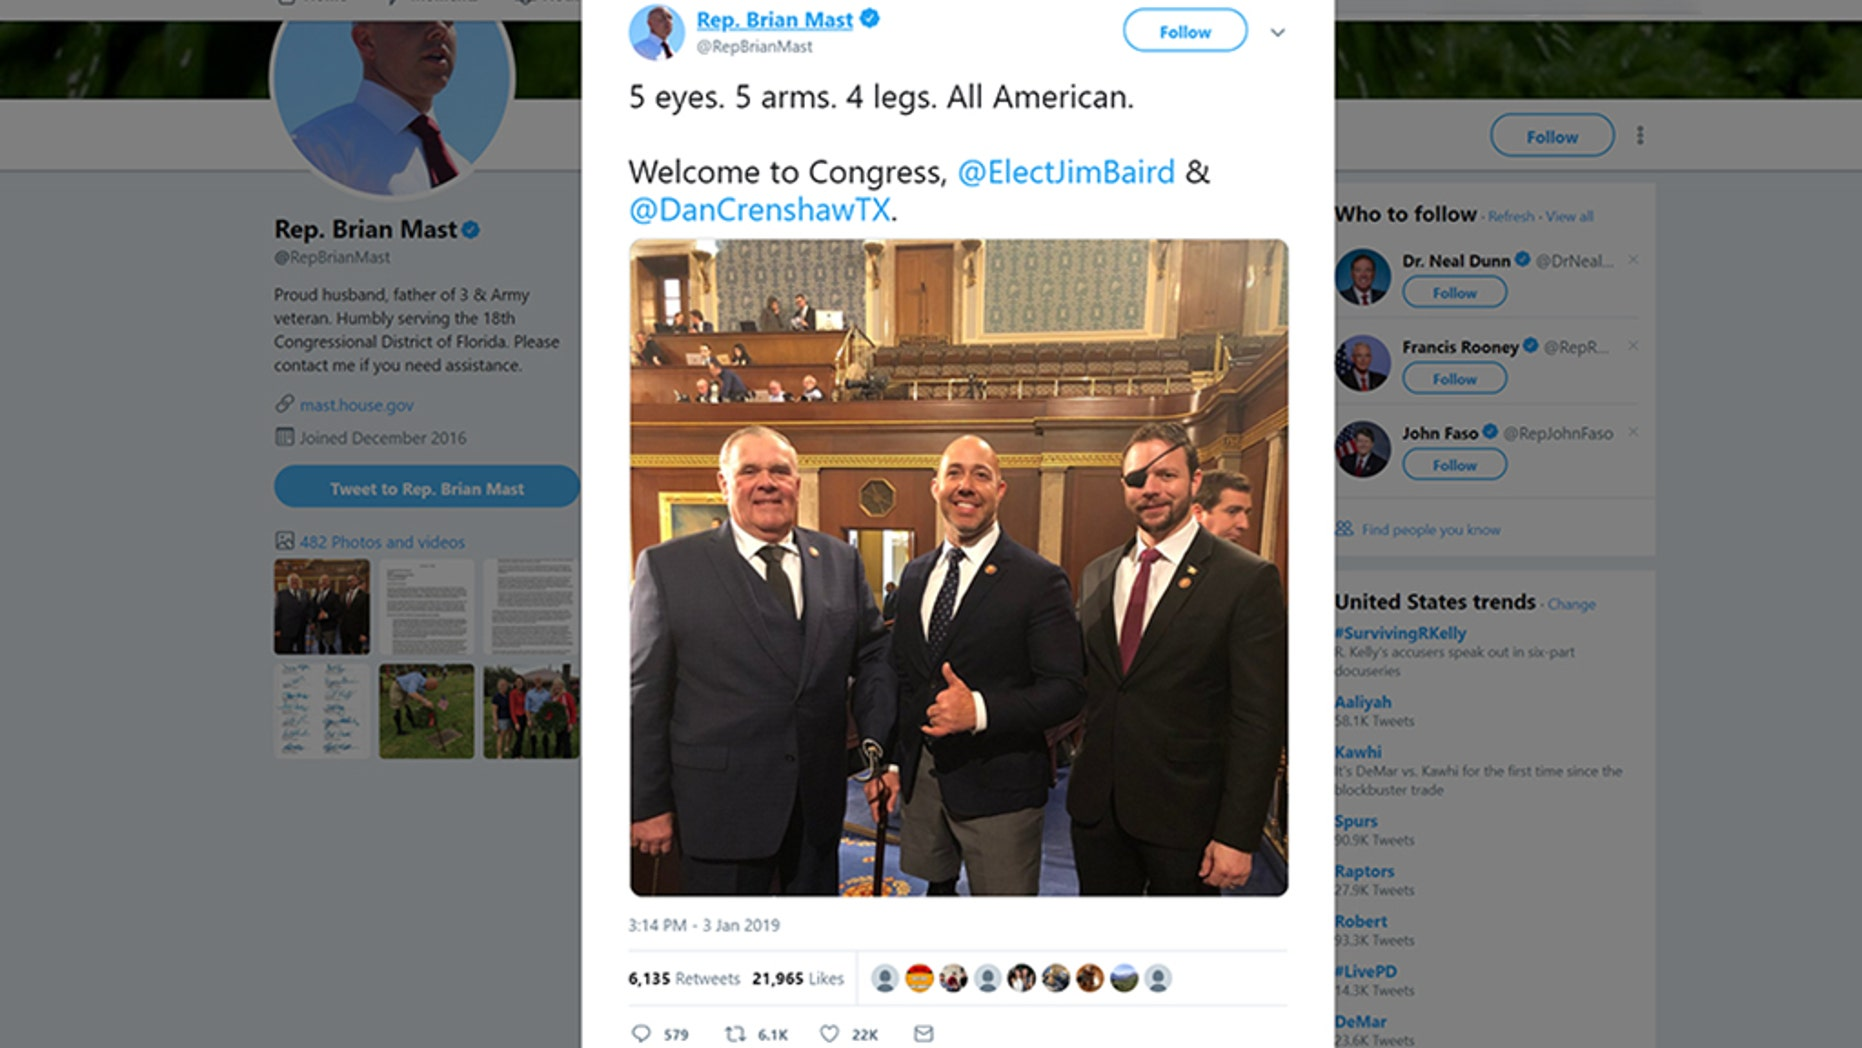 On the first day of the new Congress, three wounded veterans celebrated with a tweet at their swearing-in ceremony.